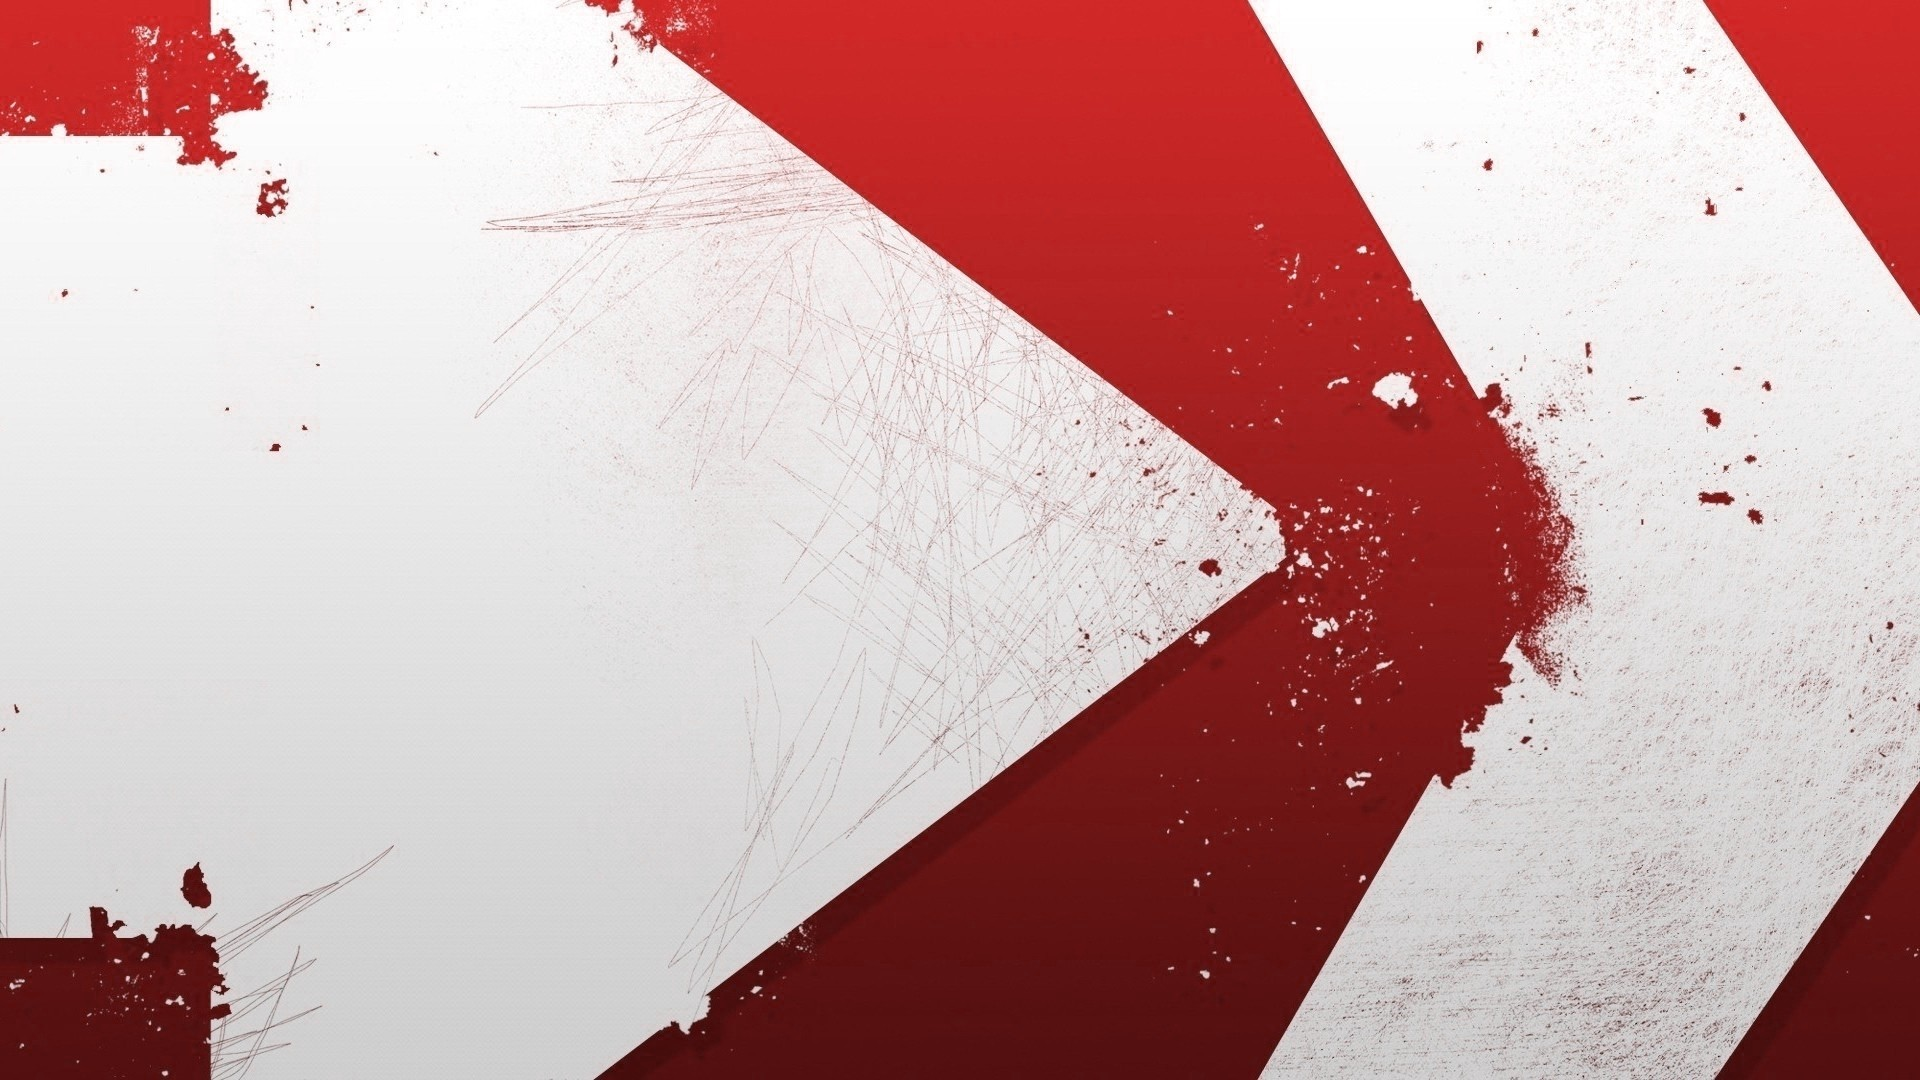 Related Wallpapers. red abstract deskto